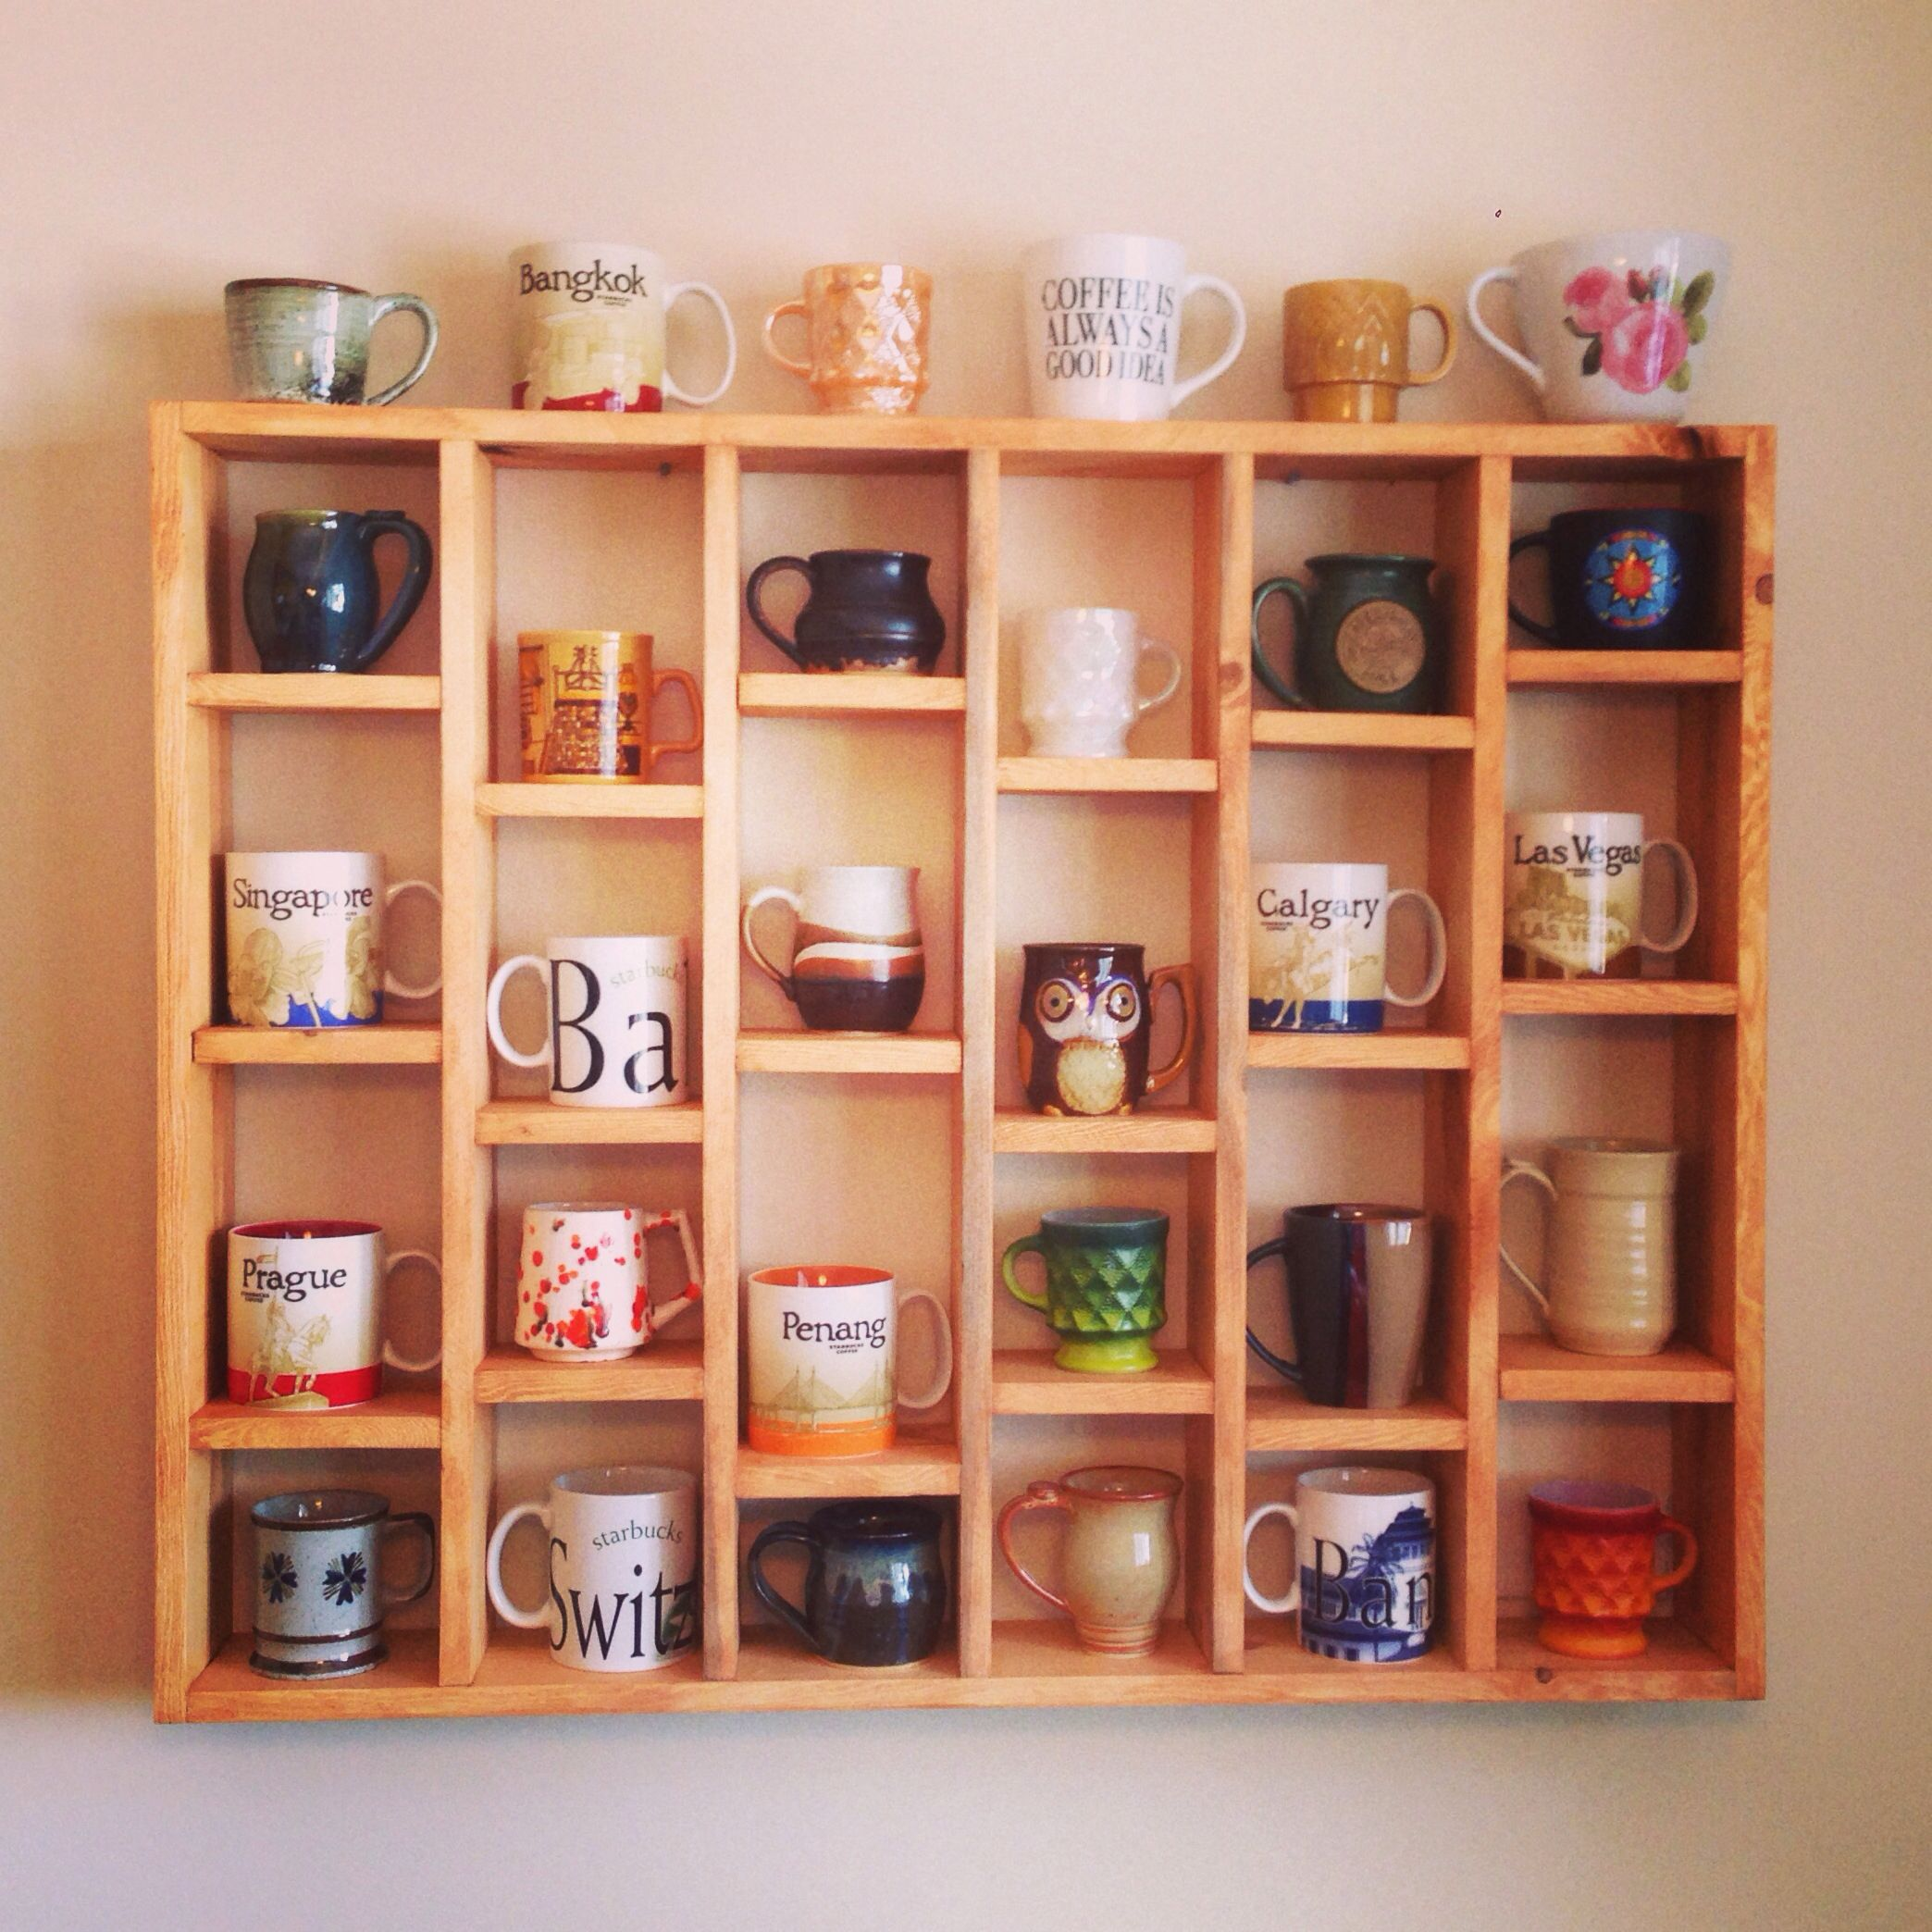 Mug Shelf My Diy Mug Display Mug Display Coffee Mug Display